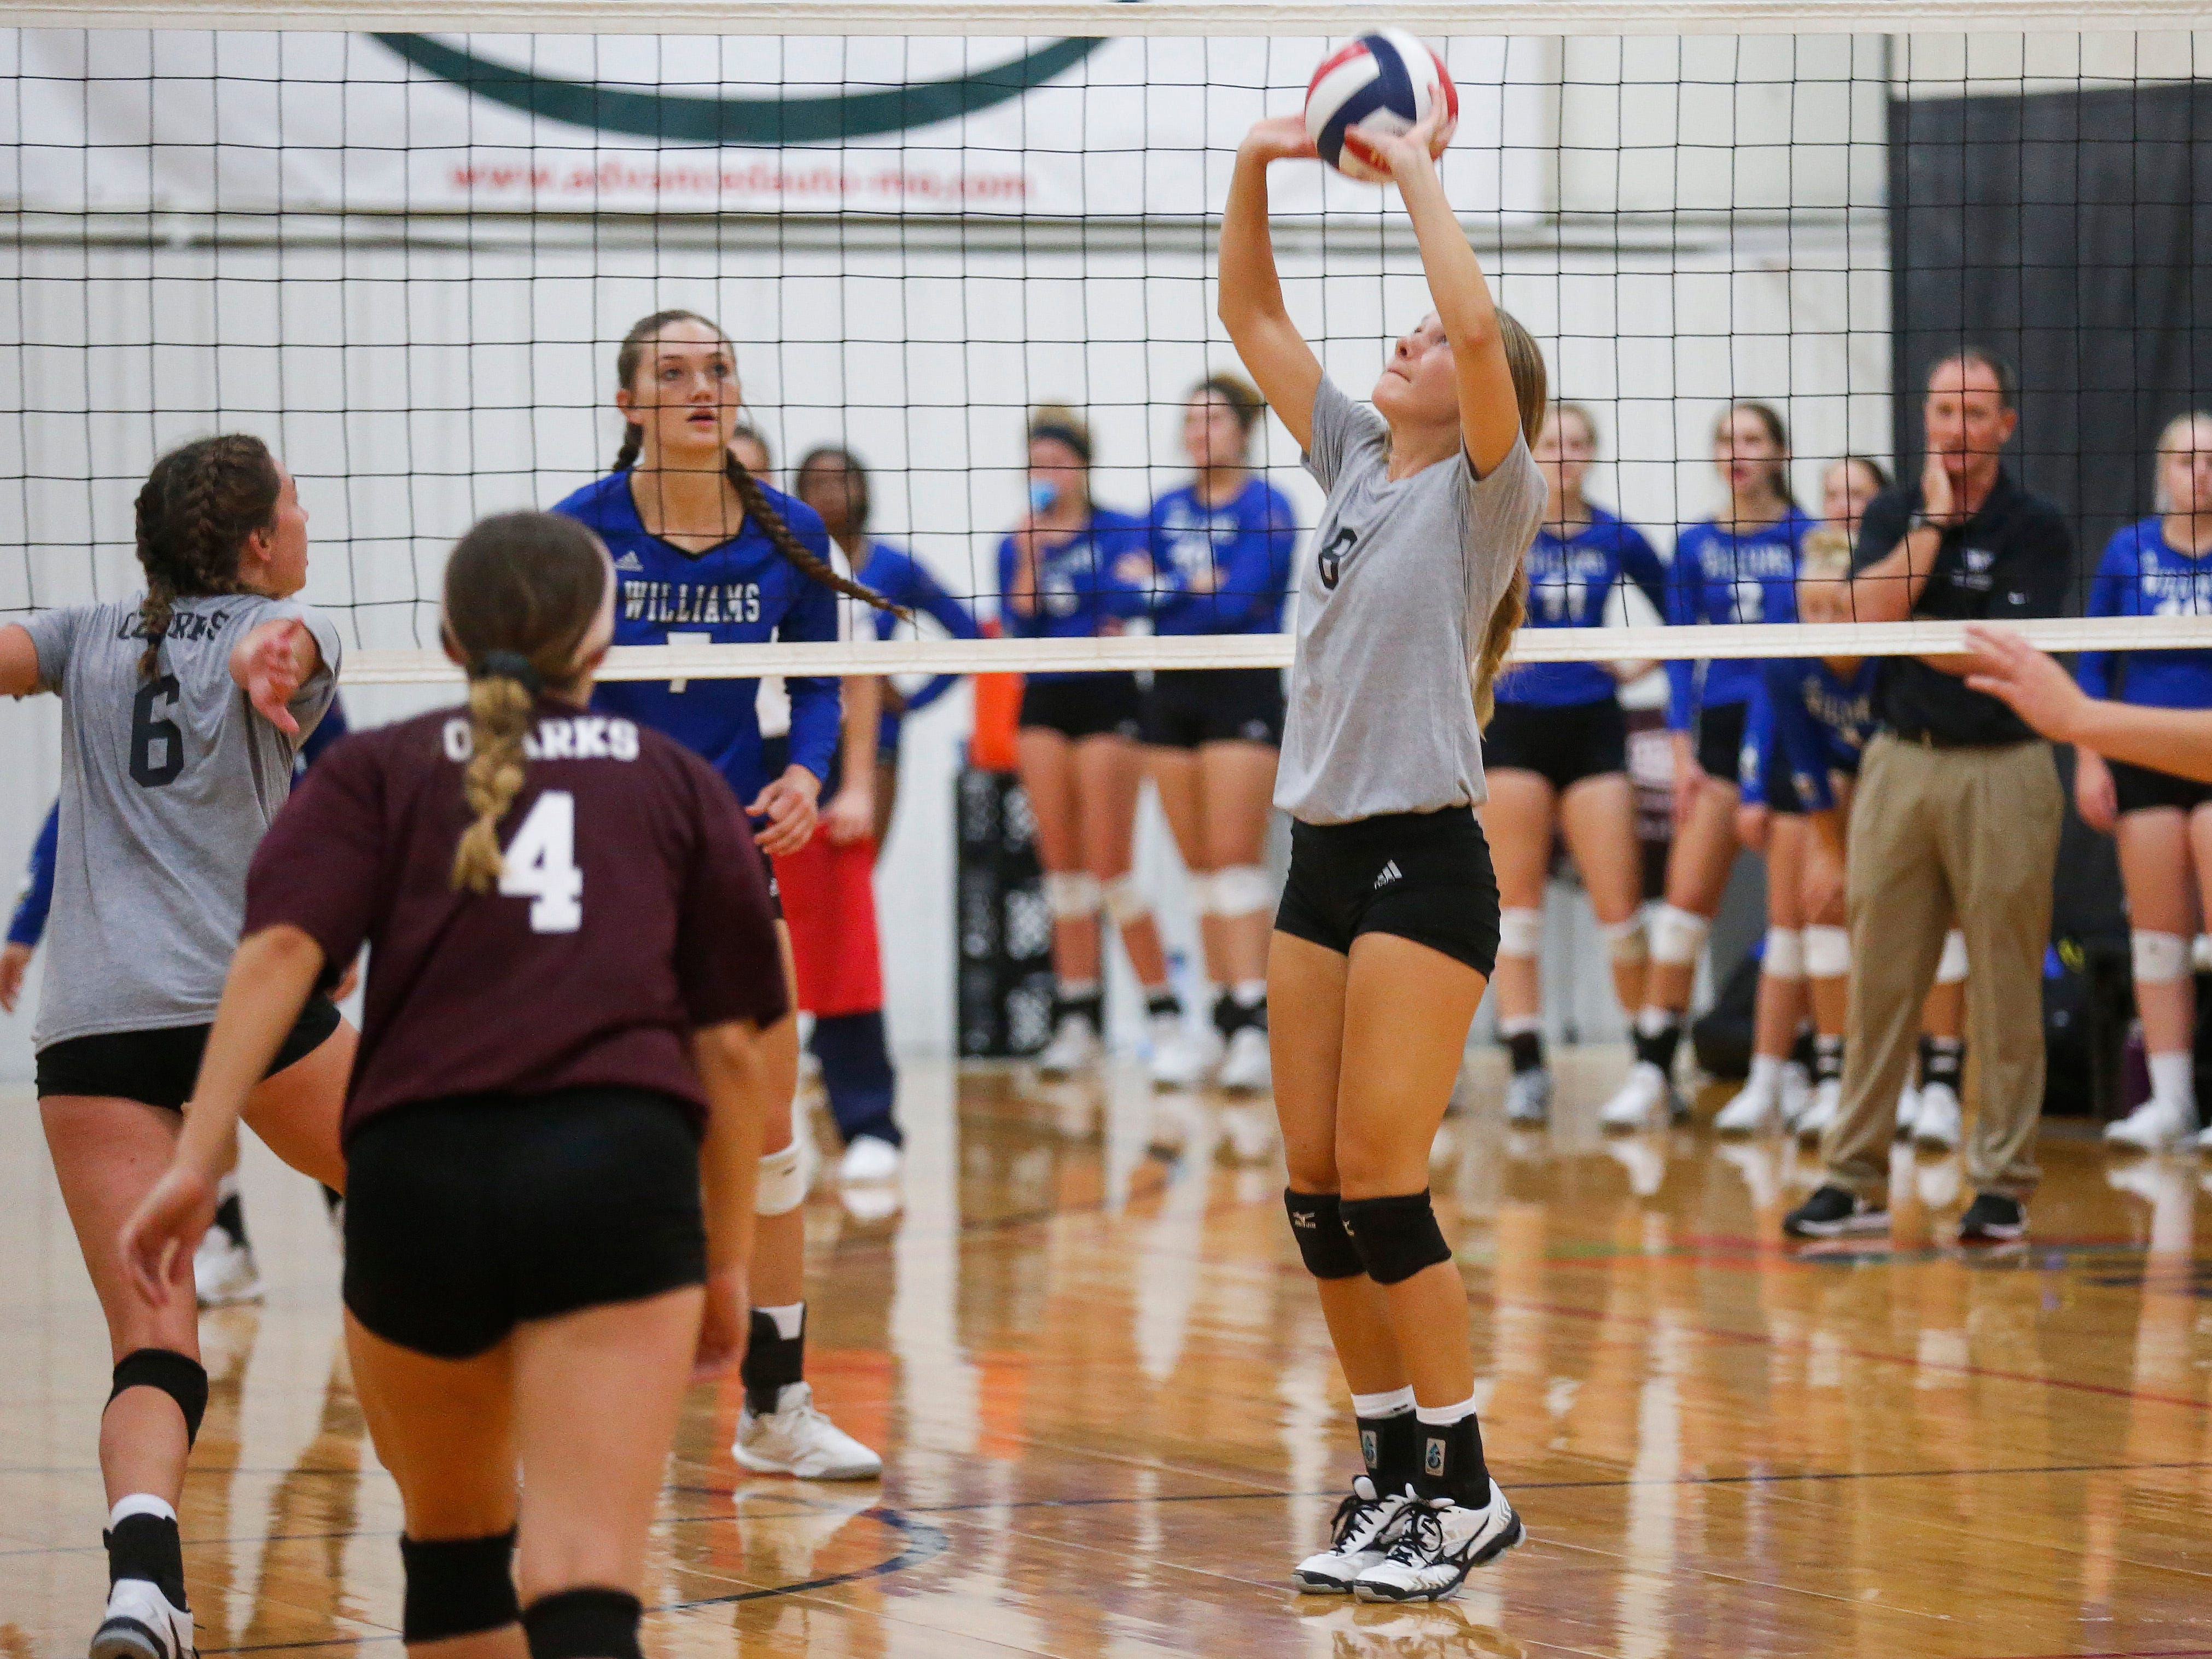 Rielly Dobbs (8), of the College of the Ozarks Bobcats, sets the ball in their game against the Williams Baptist Eagles during the 2018 Evangel Classic at The Courts in Springfield, MO., on Saturday, Sep. 8, 2018.